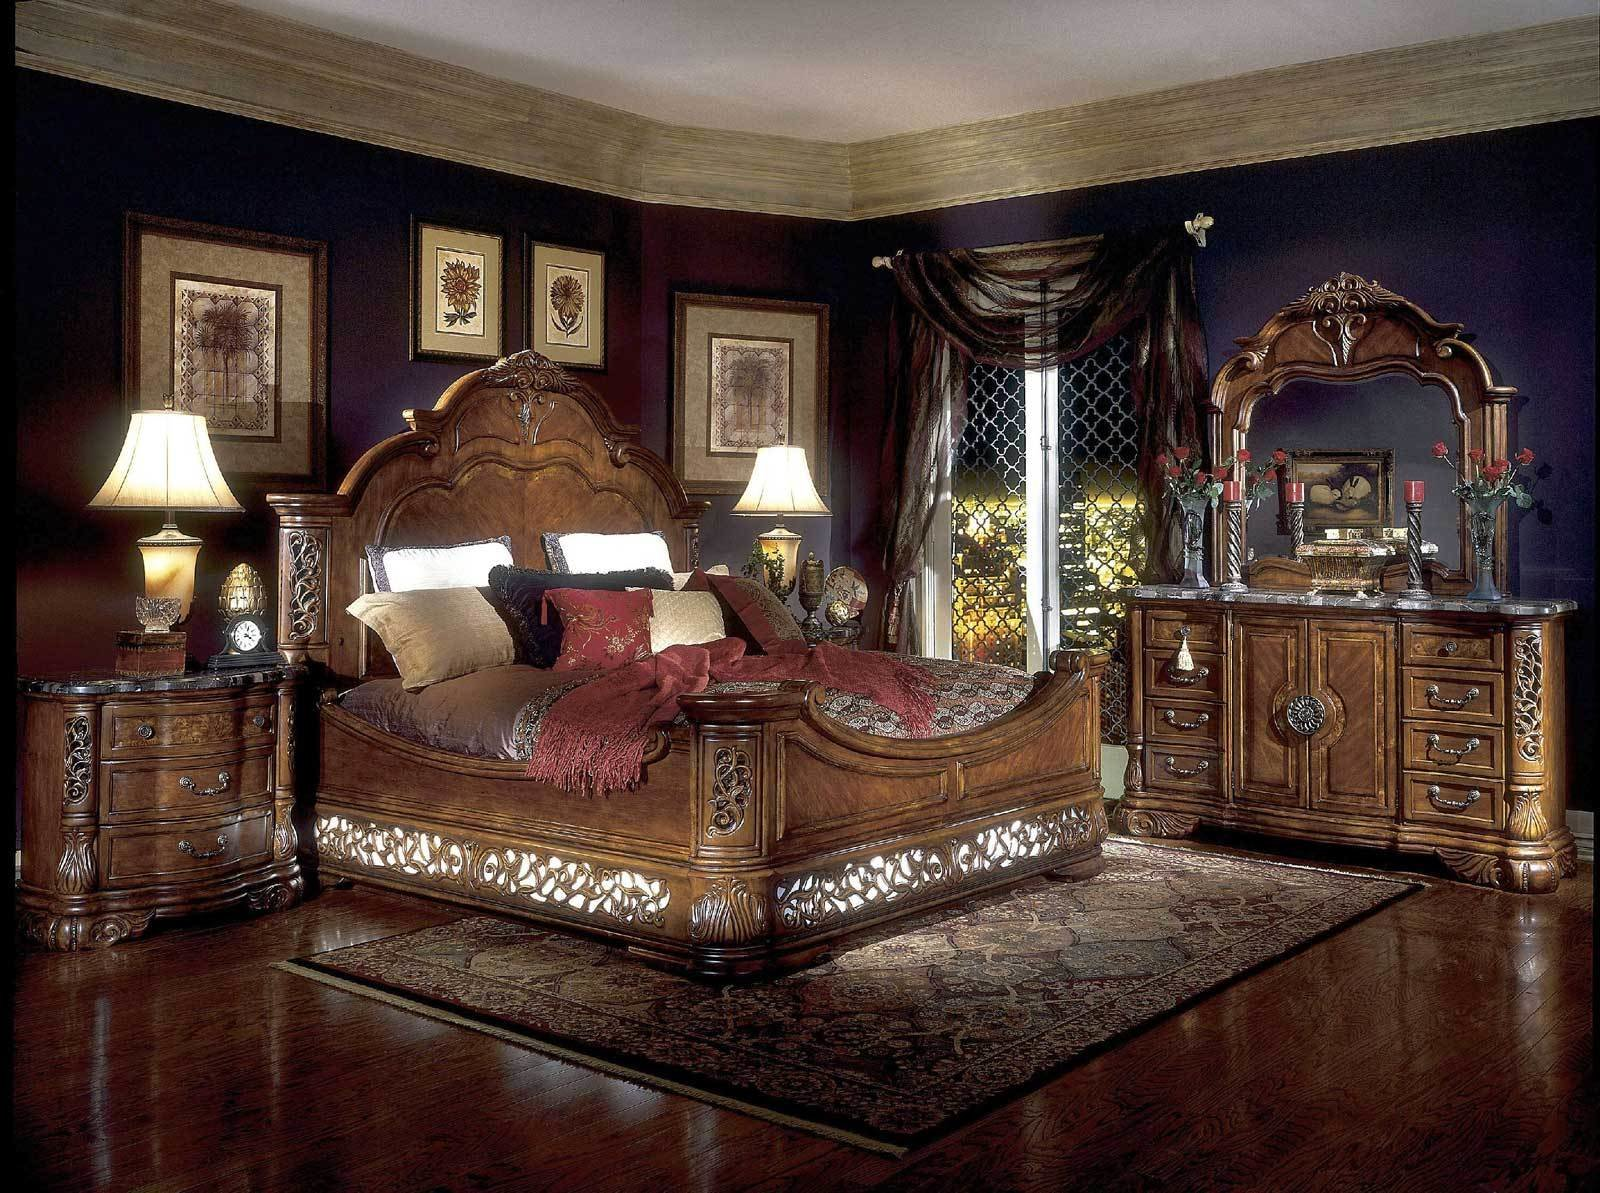 Best Enhance The King Bedroom Sets The Soft Vineyard 6 Amaza With Pictures